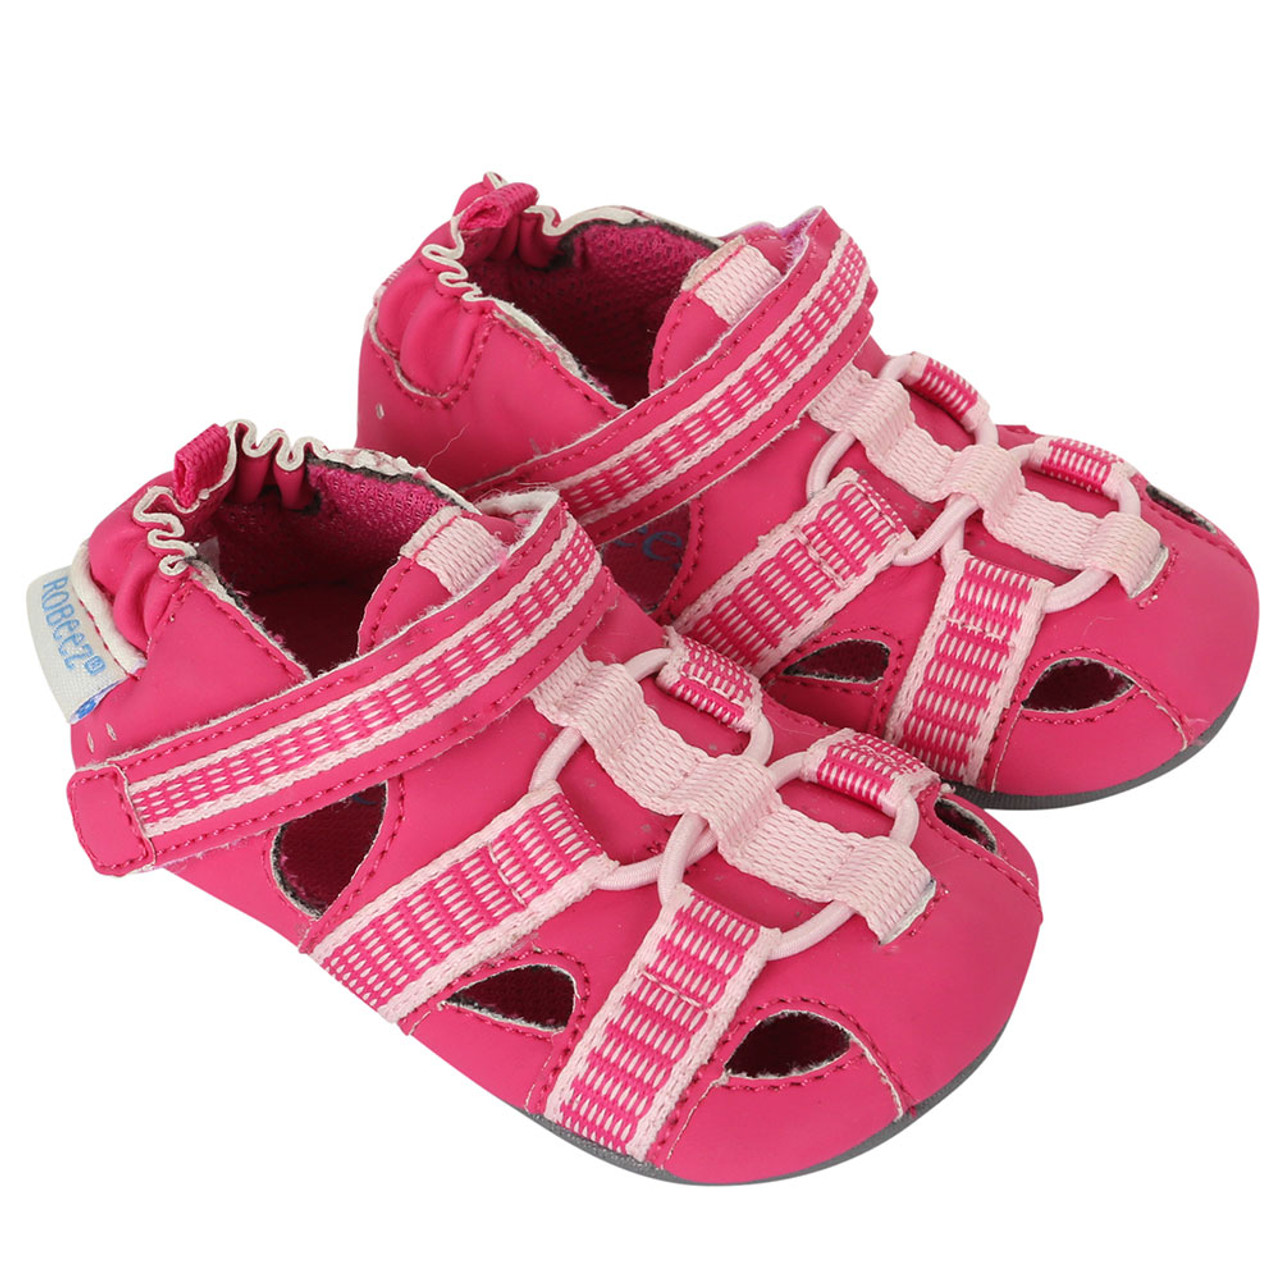 d73b9025c6a99 Robeez Beach Break Hot Pink Mini Shoez